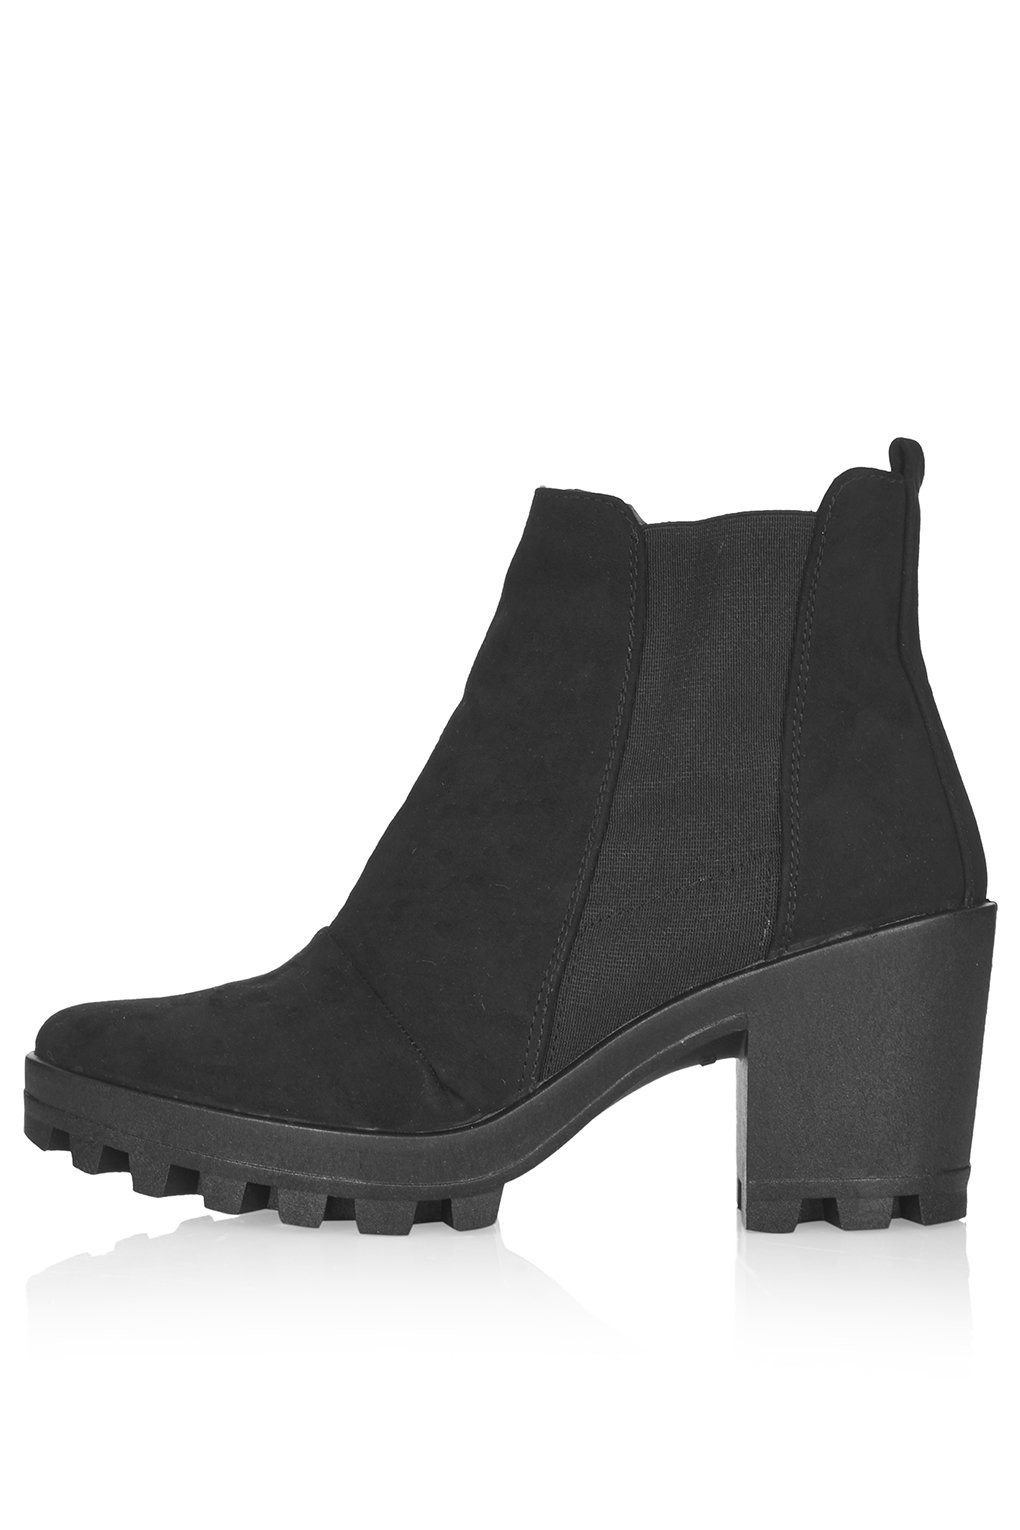 BOBBY Chelsea Boots - Boots - Shoes